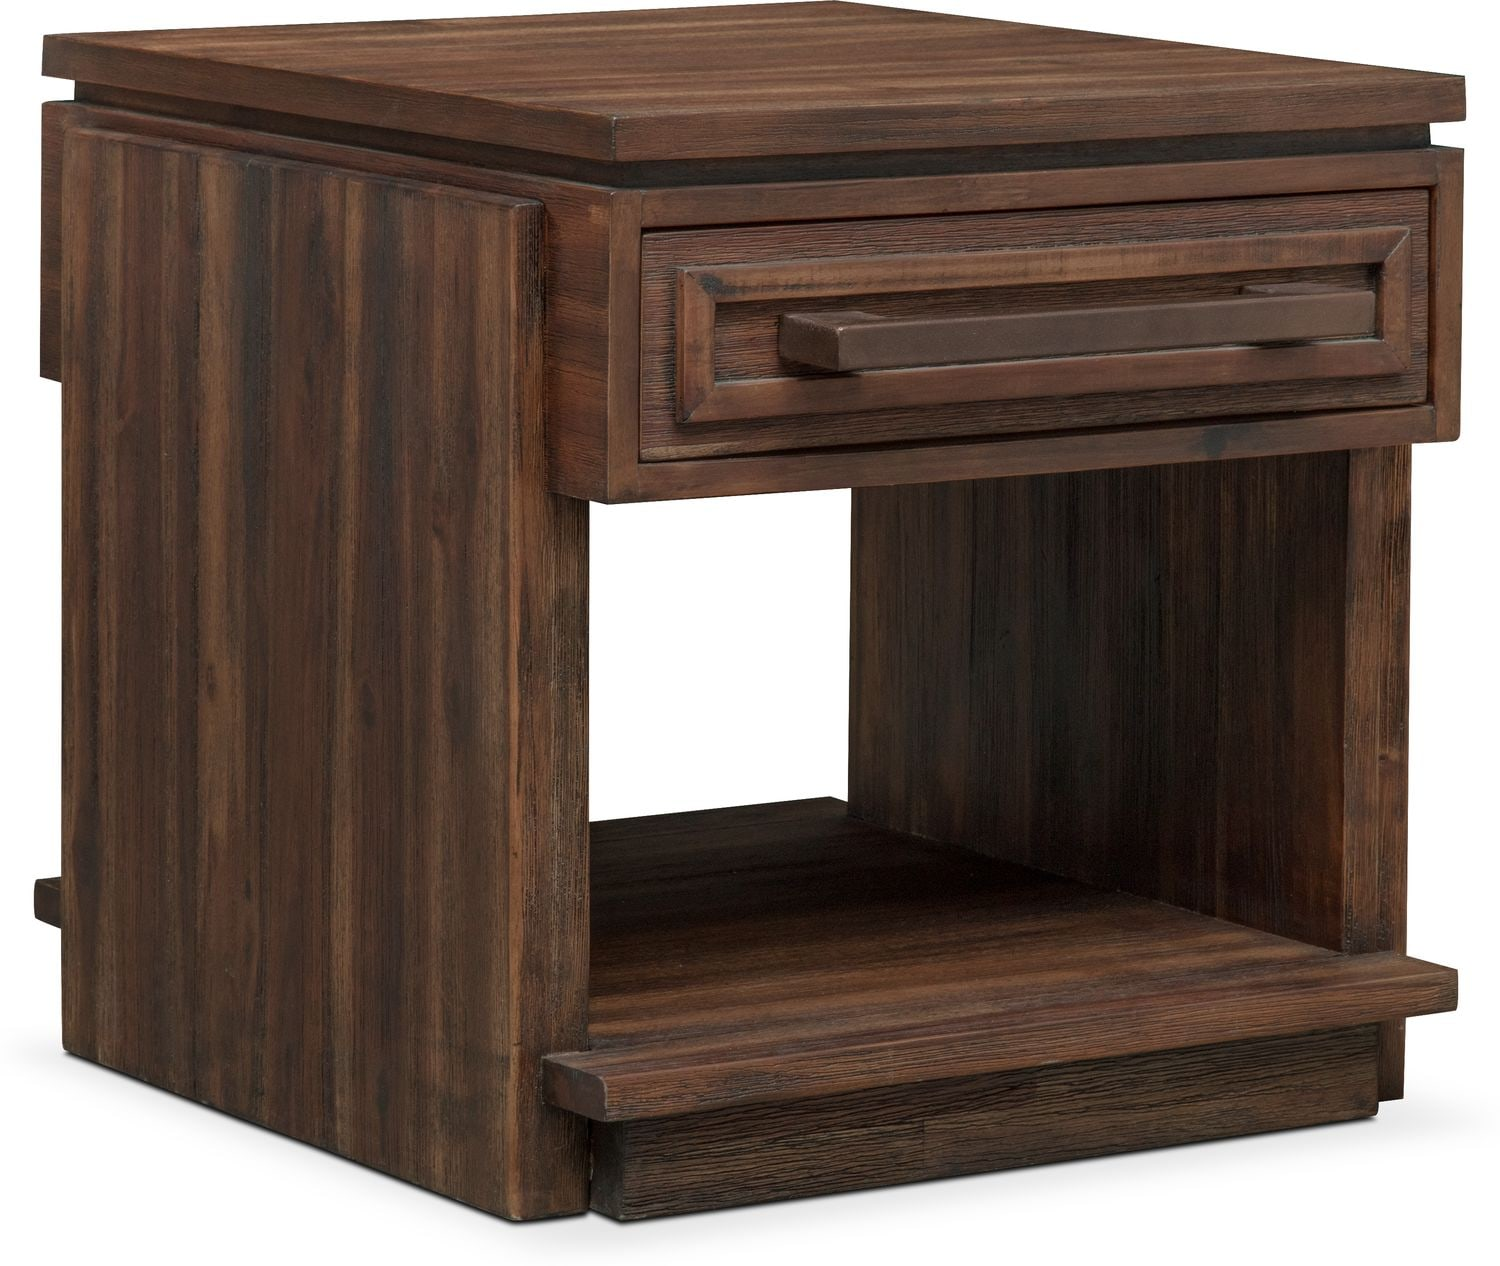 End Tables Living Room Tables Value City Furniture and Mattresses